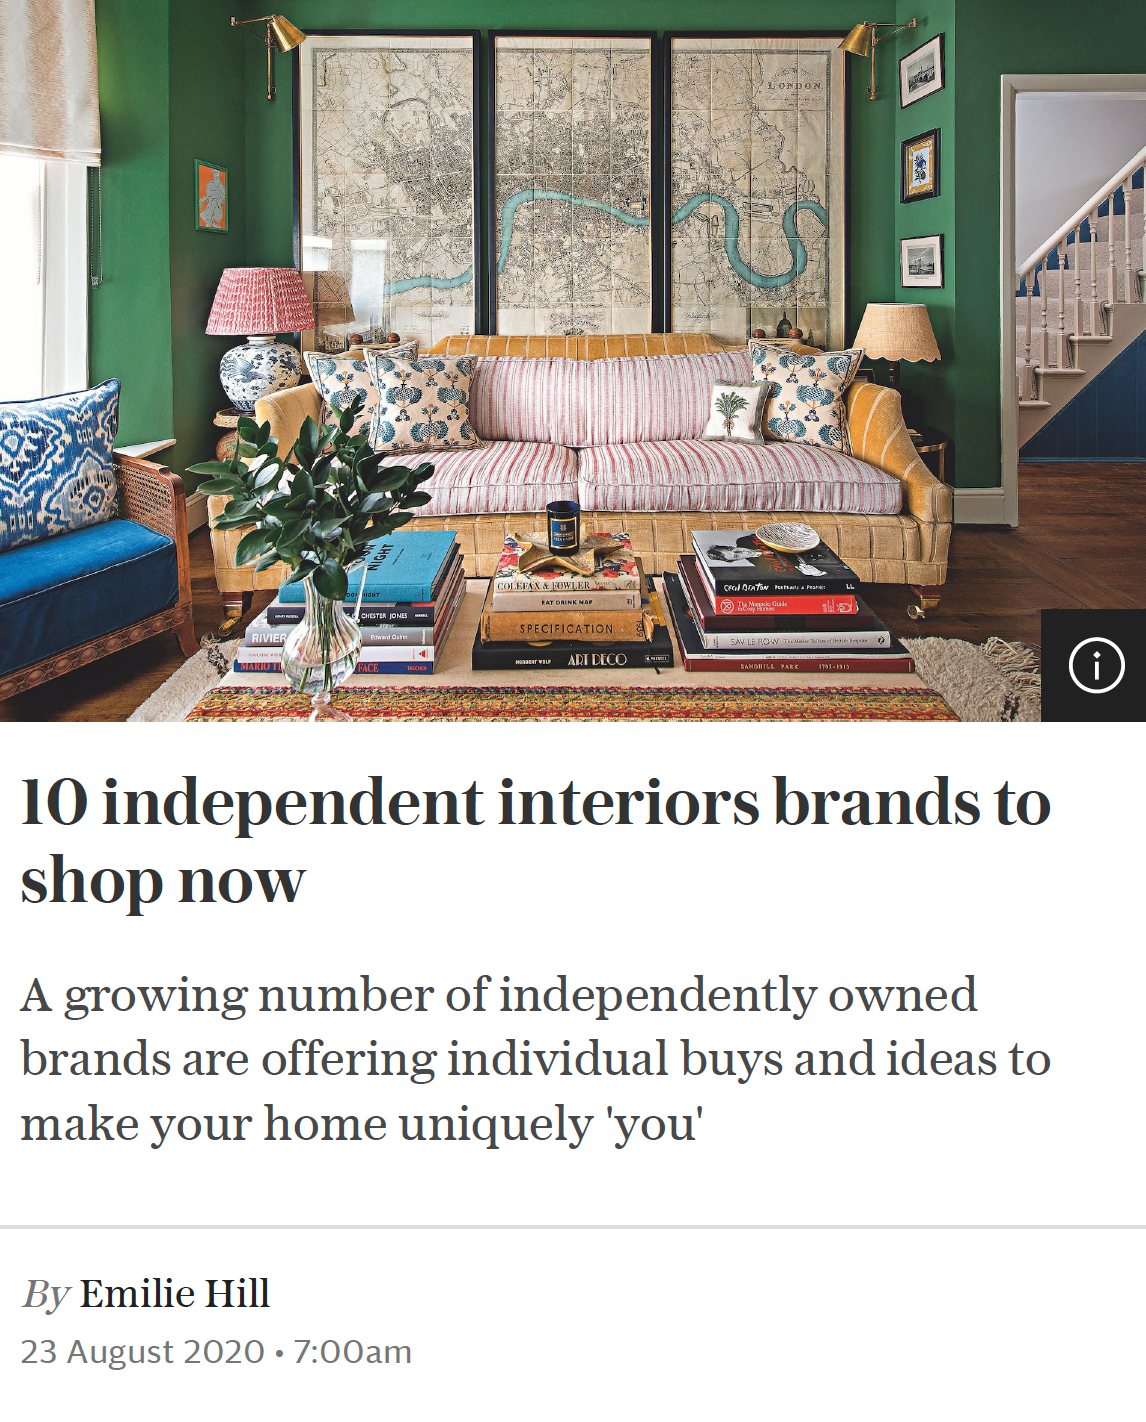 Main image of Stella magazine article featuring 10 independent interiors brands to shop now